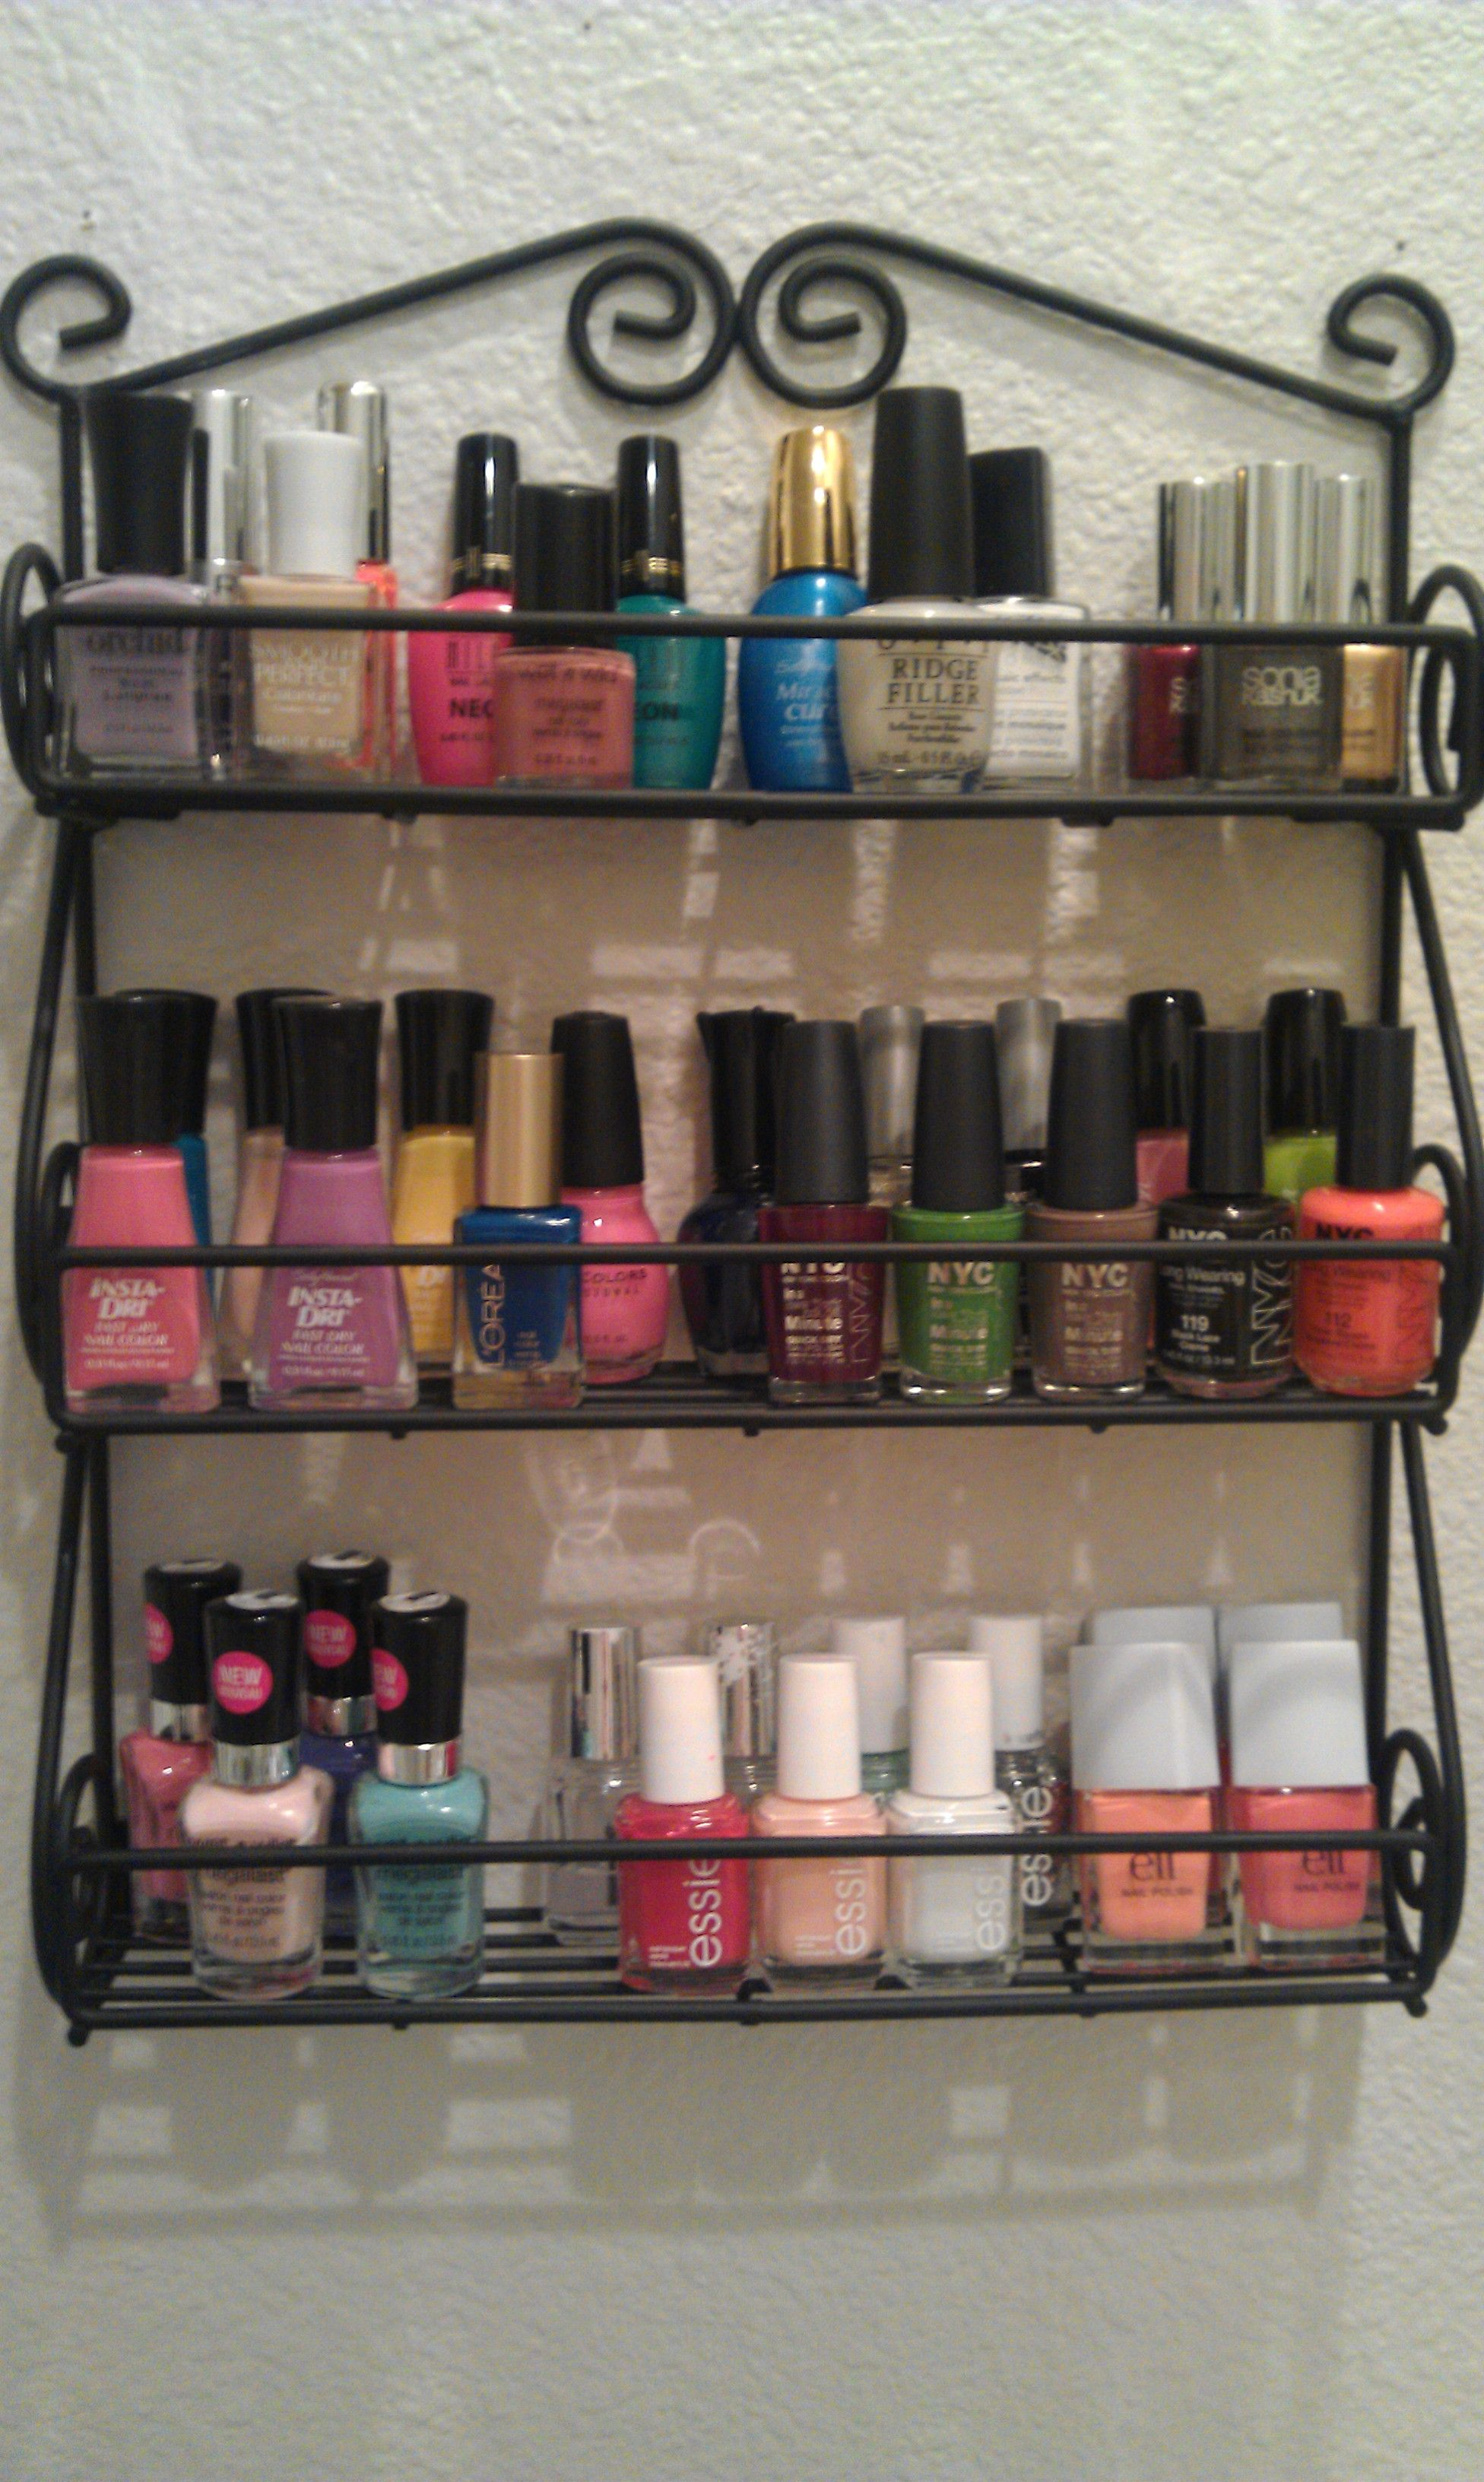 Spice rack for nail polishes!